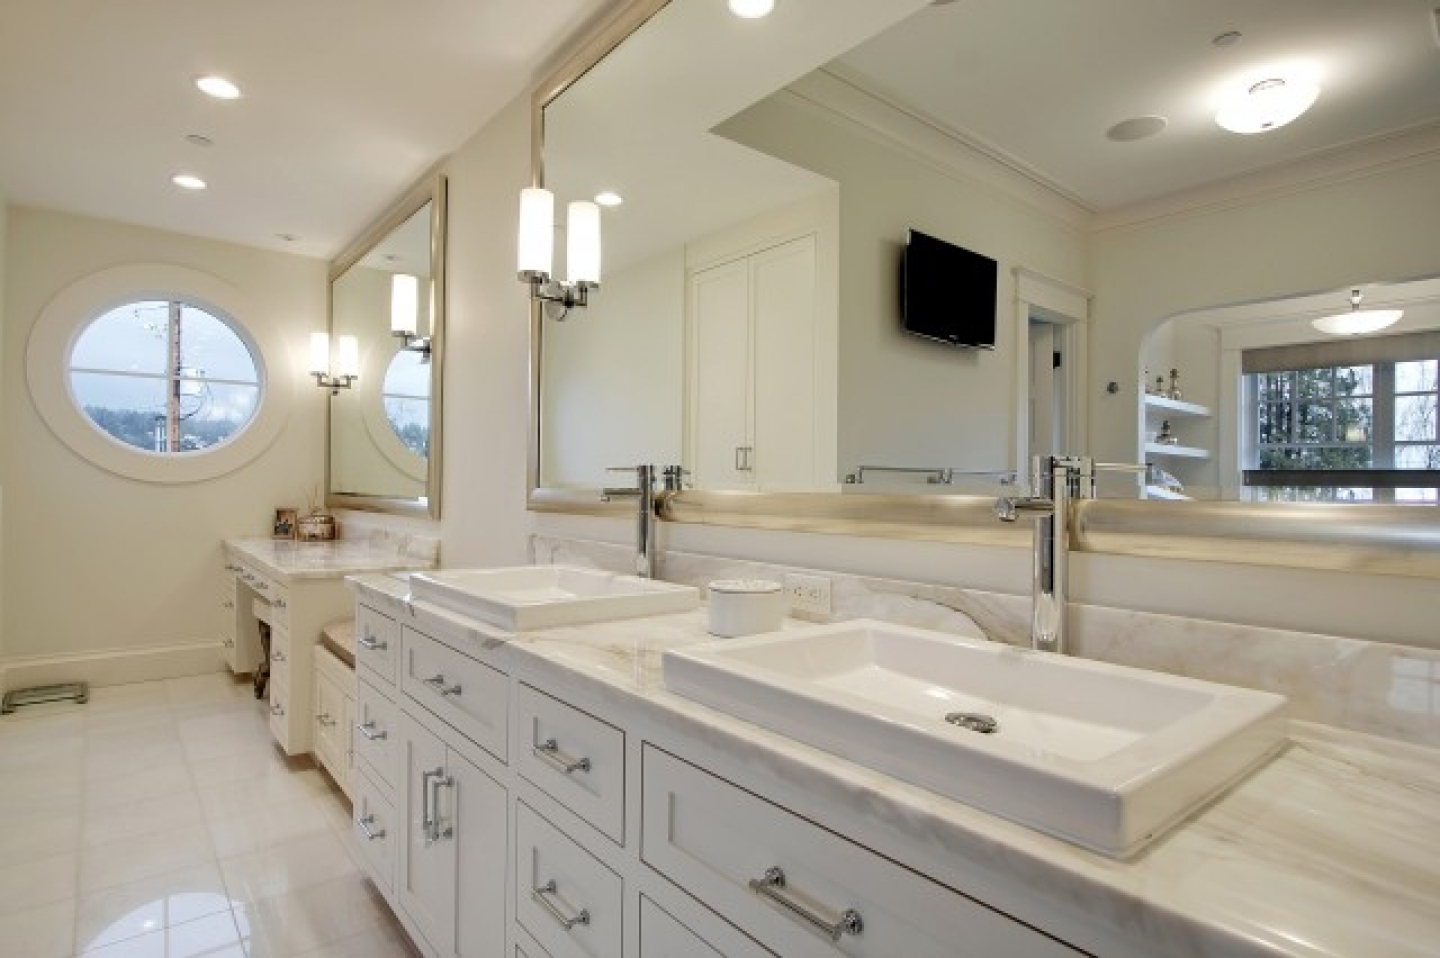 Vanity Mirrors For Bathroom Wall